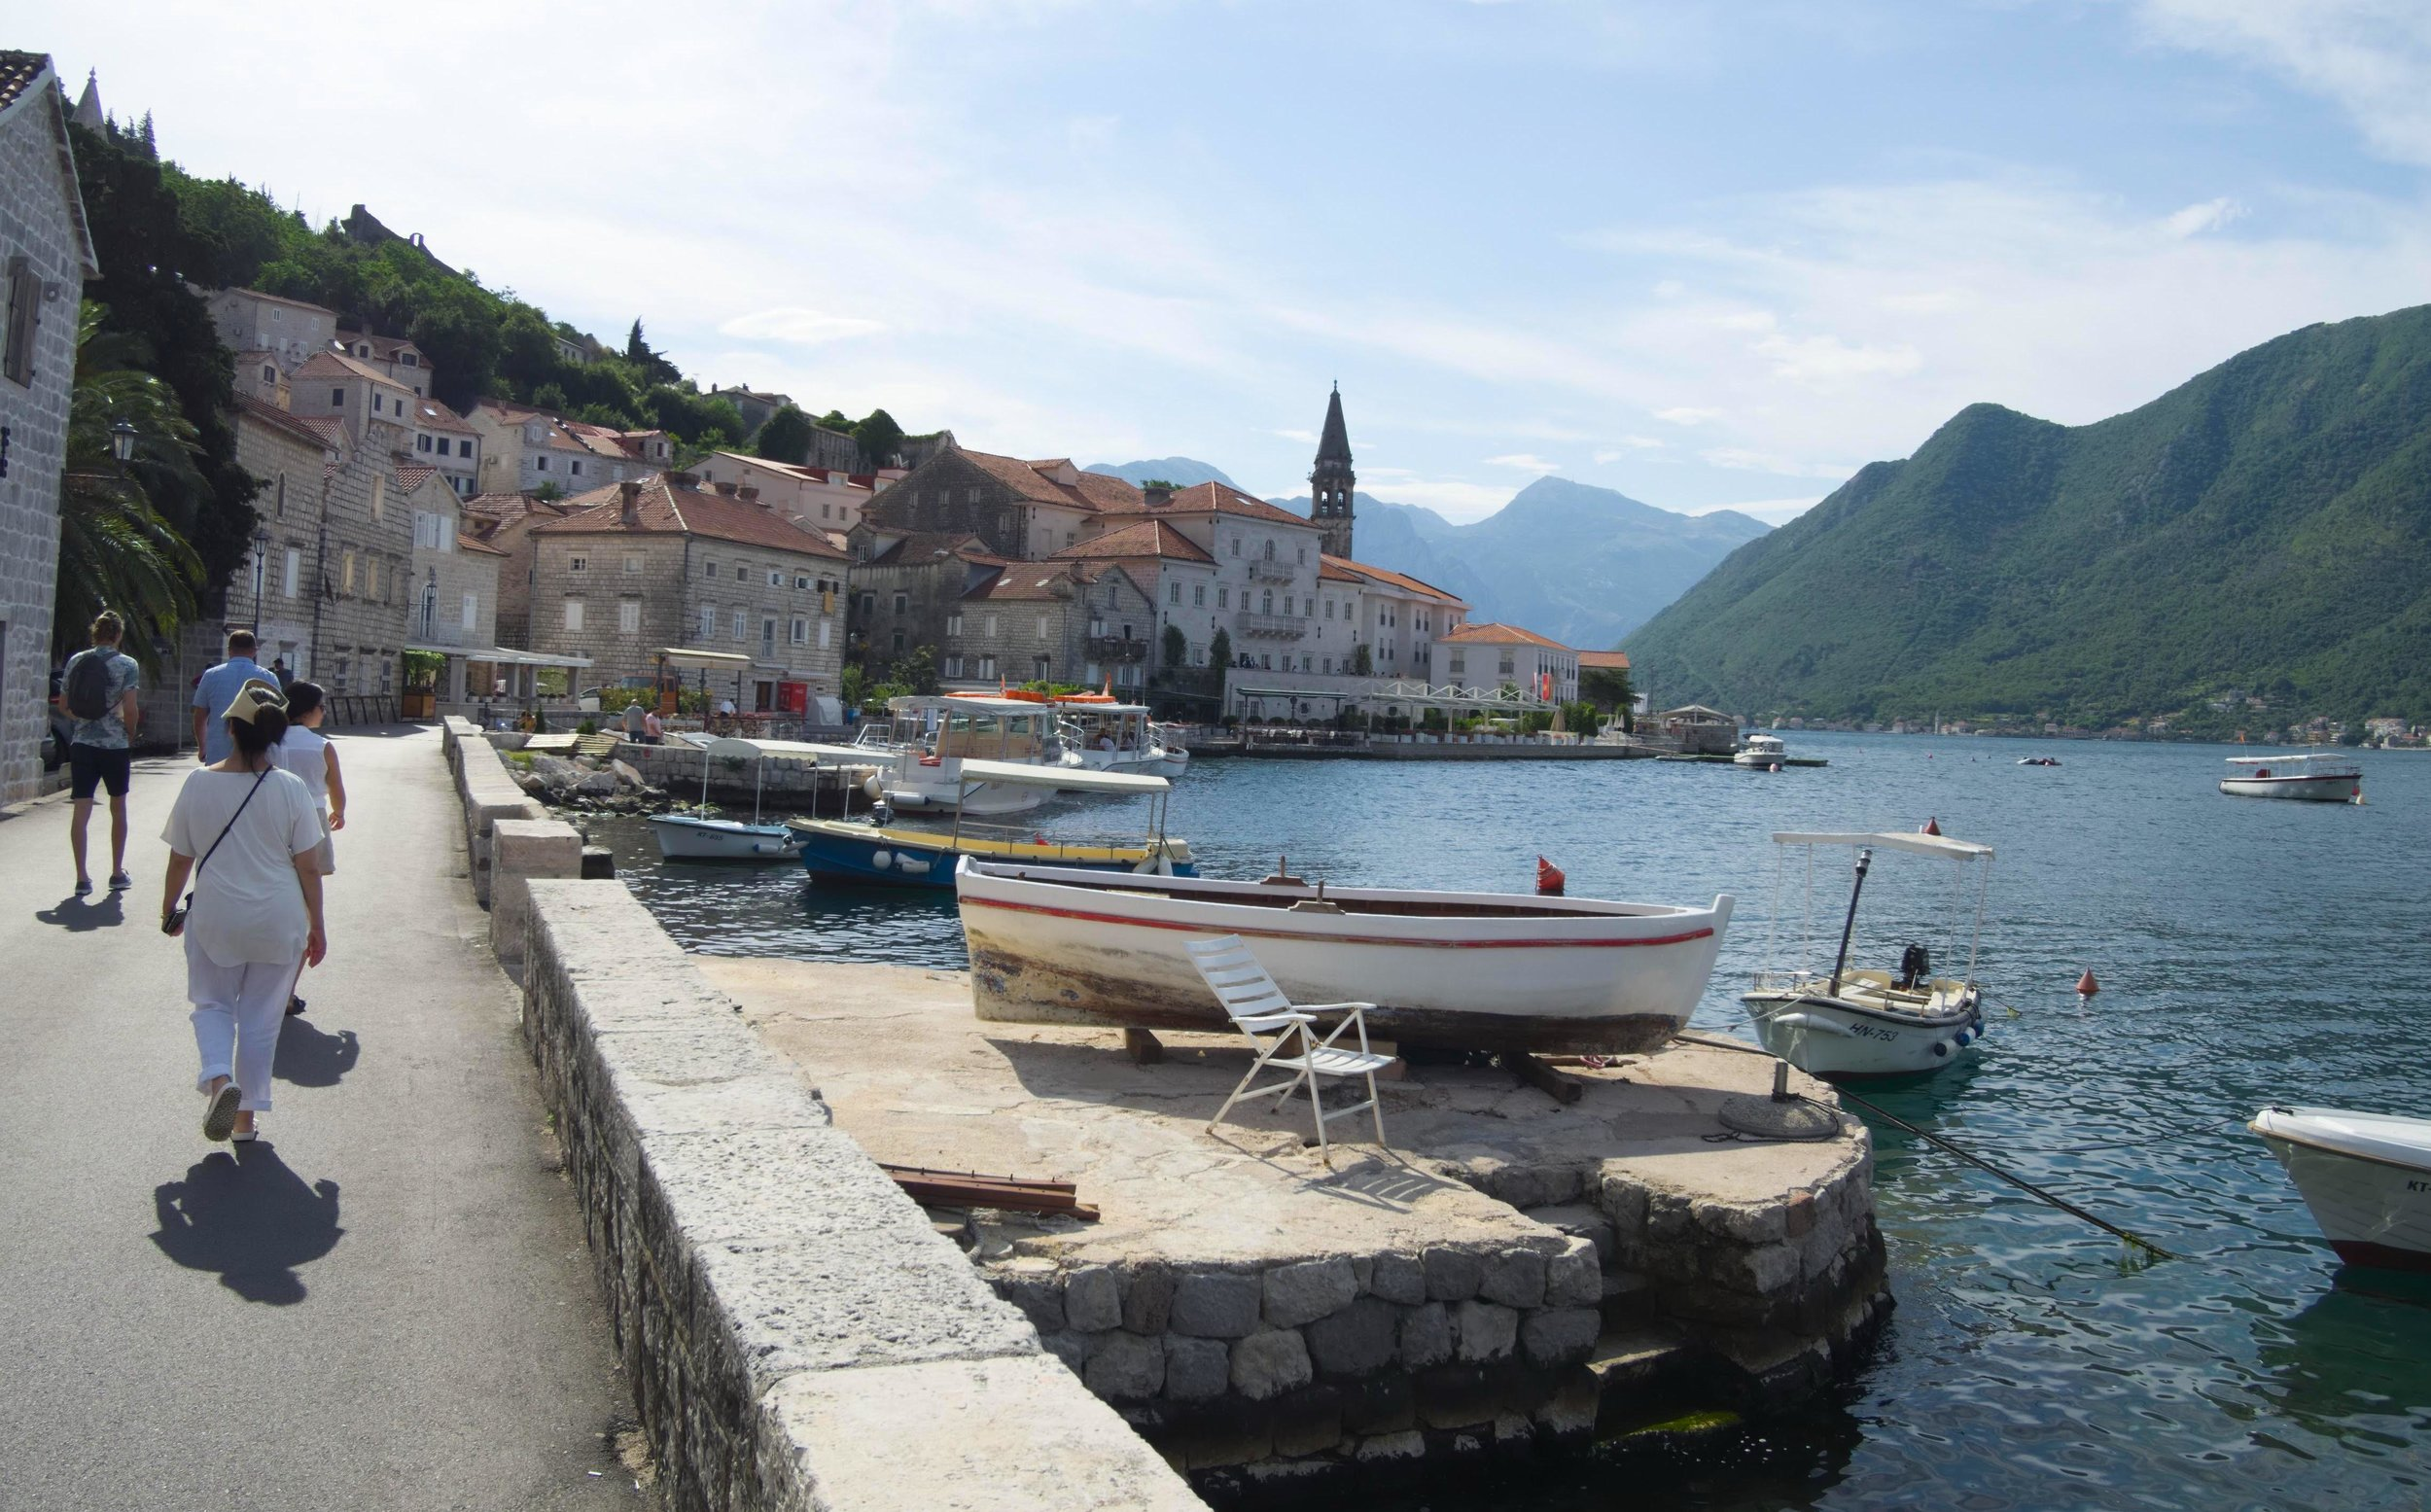 Mladen leading the pack towards a boat in Perast (Photo: tPac).